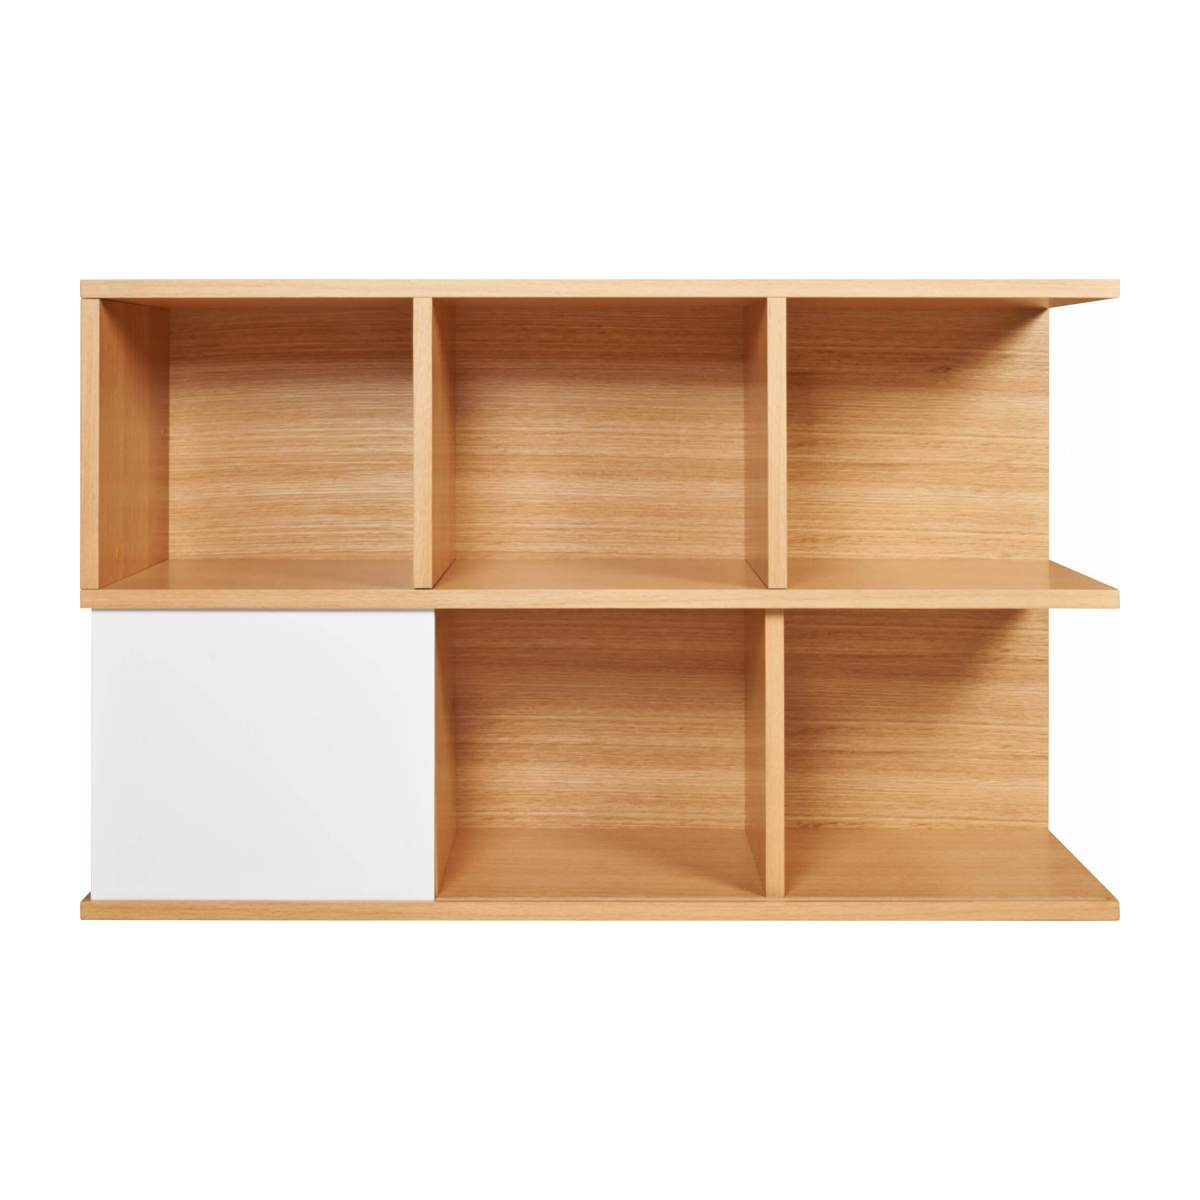 Low bookcase, oak and white n°1